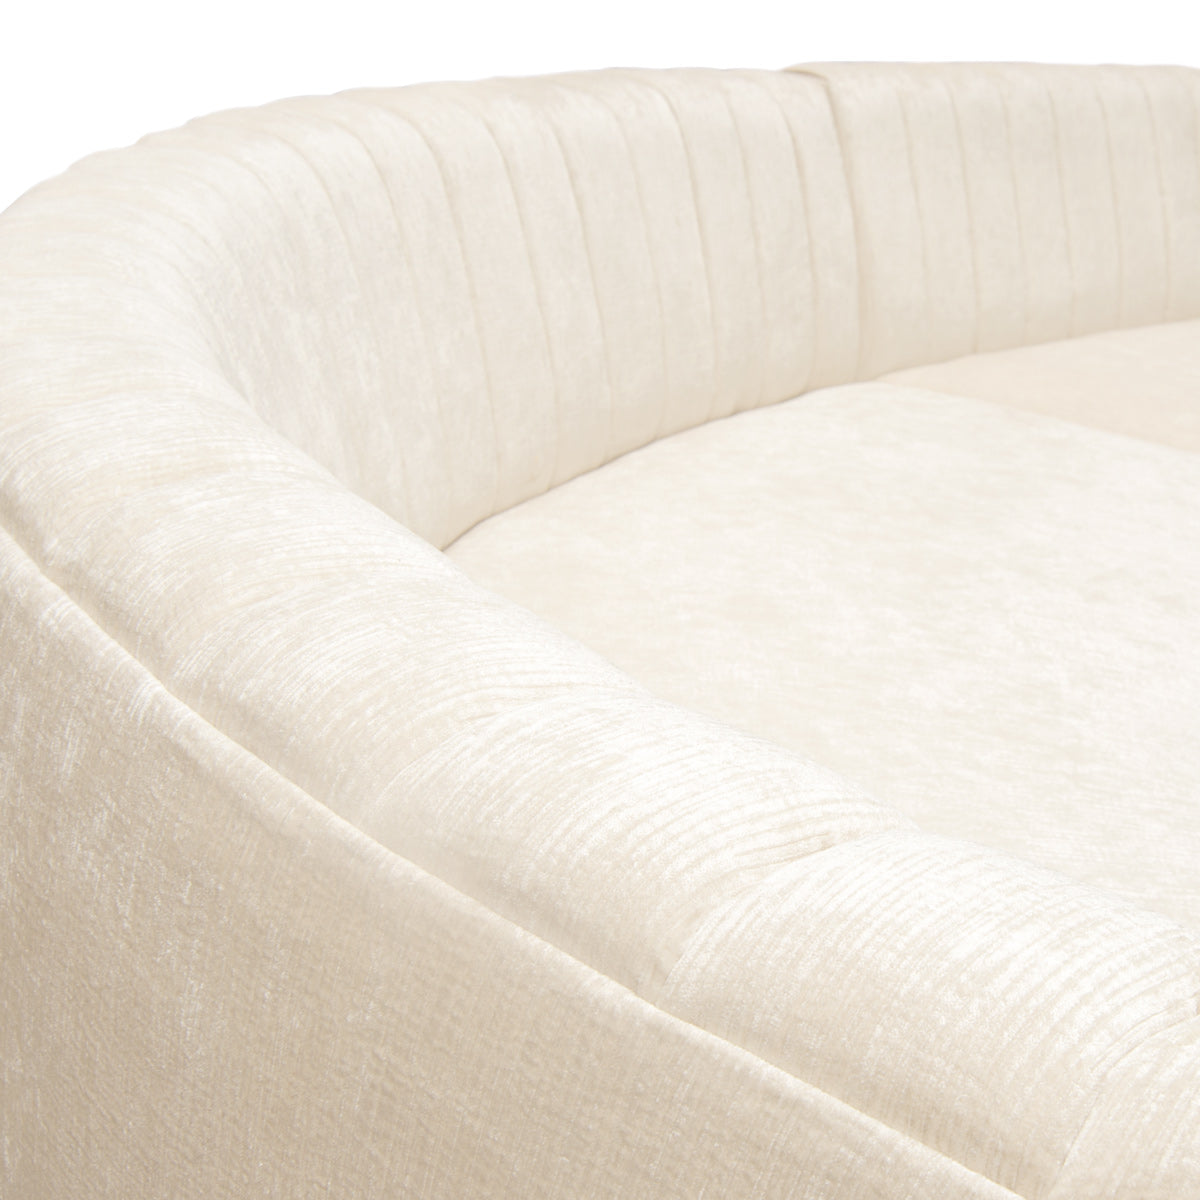 Biarritz Sectional in Chenille - ModShop1.com